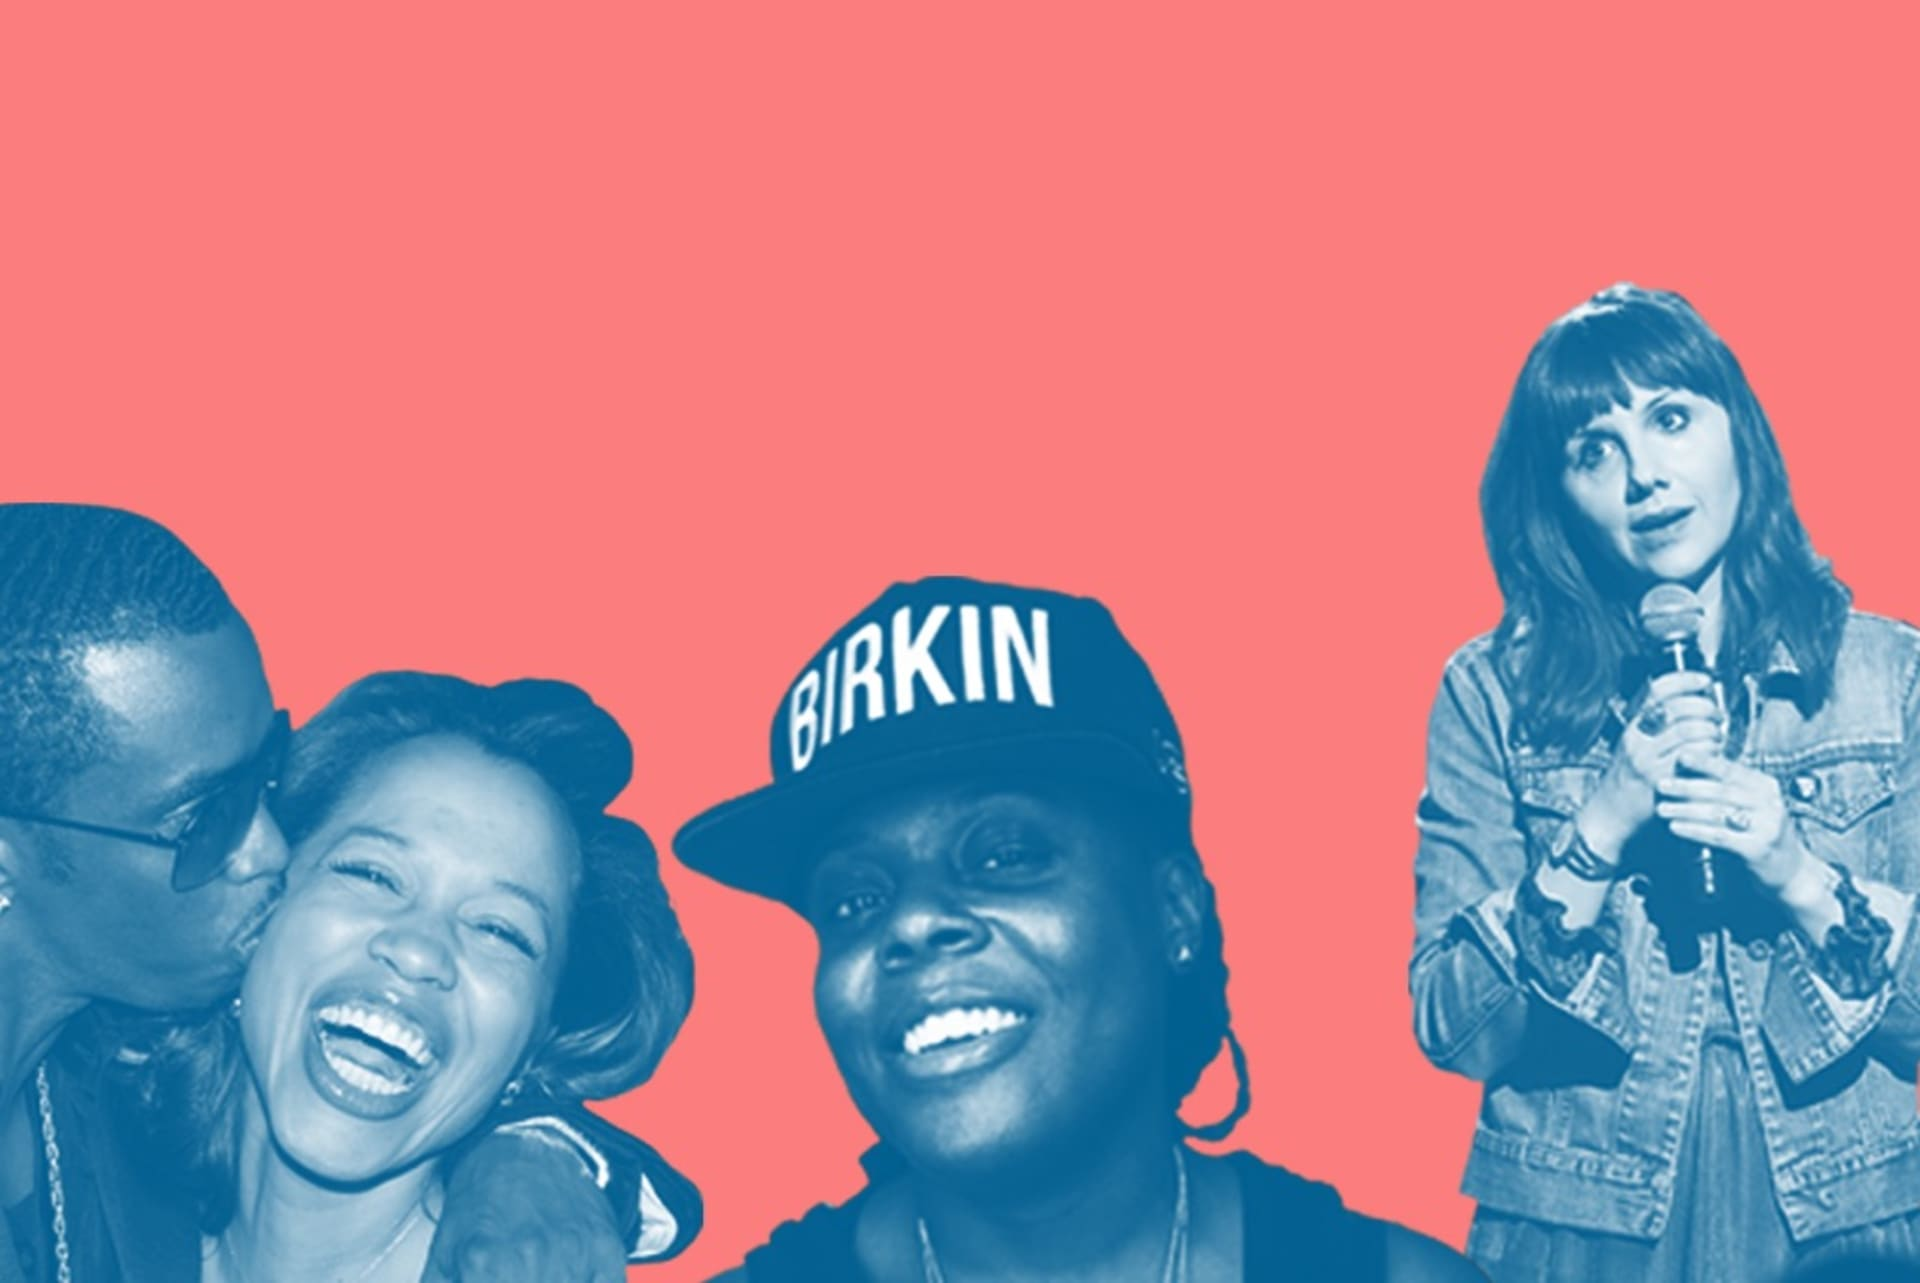 Meet 5 Pivotal Women in the Music Industry This Year